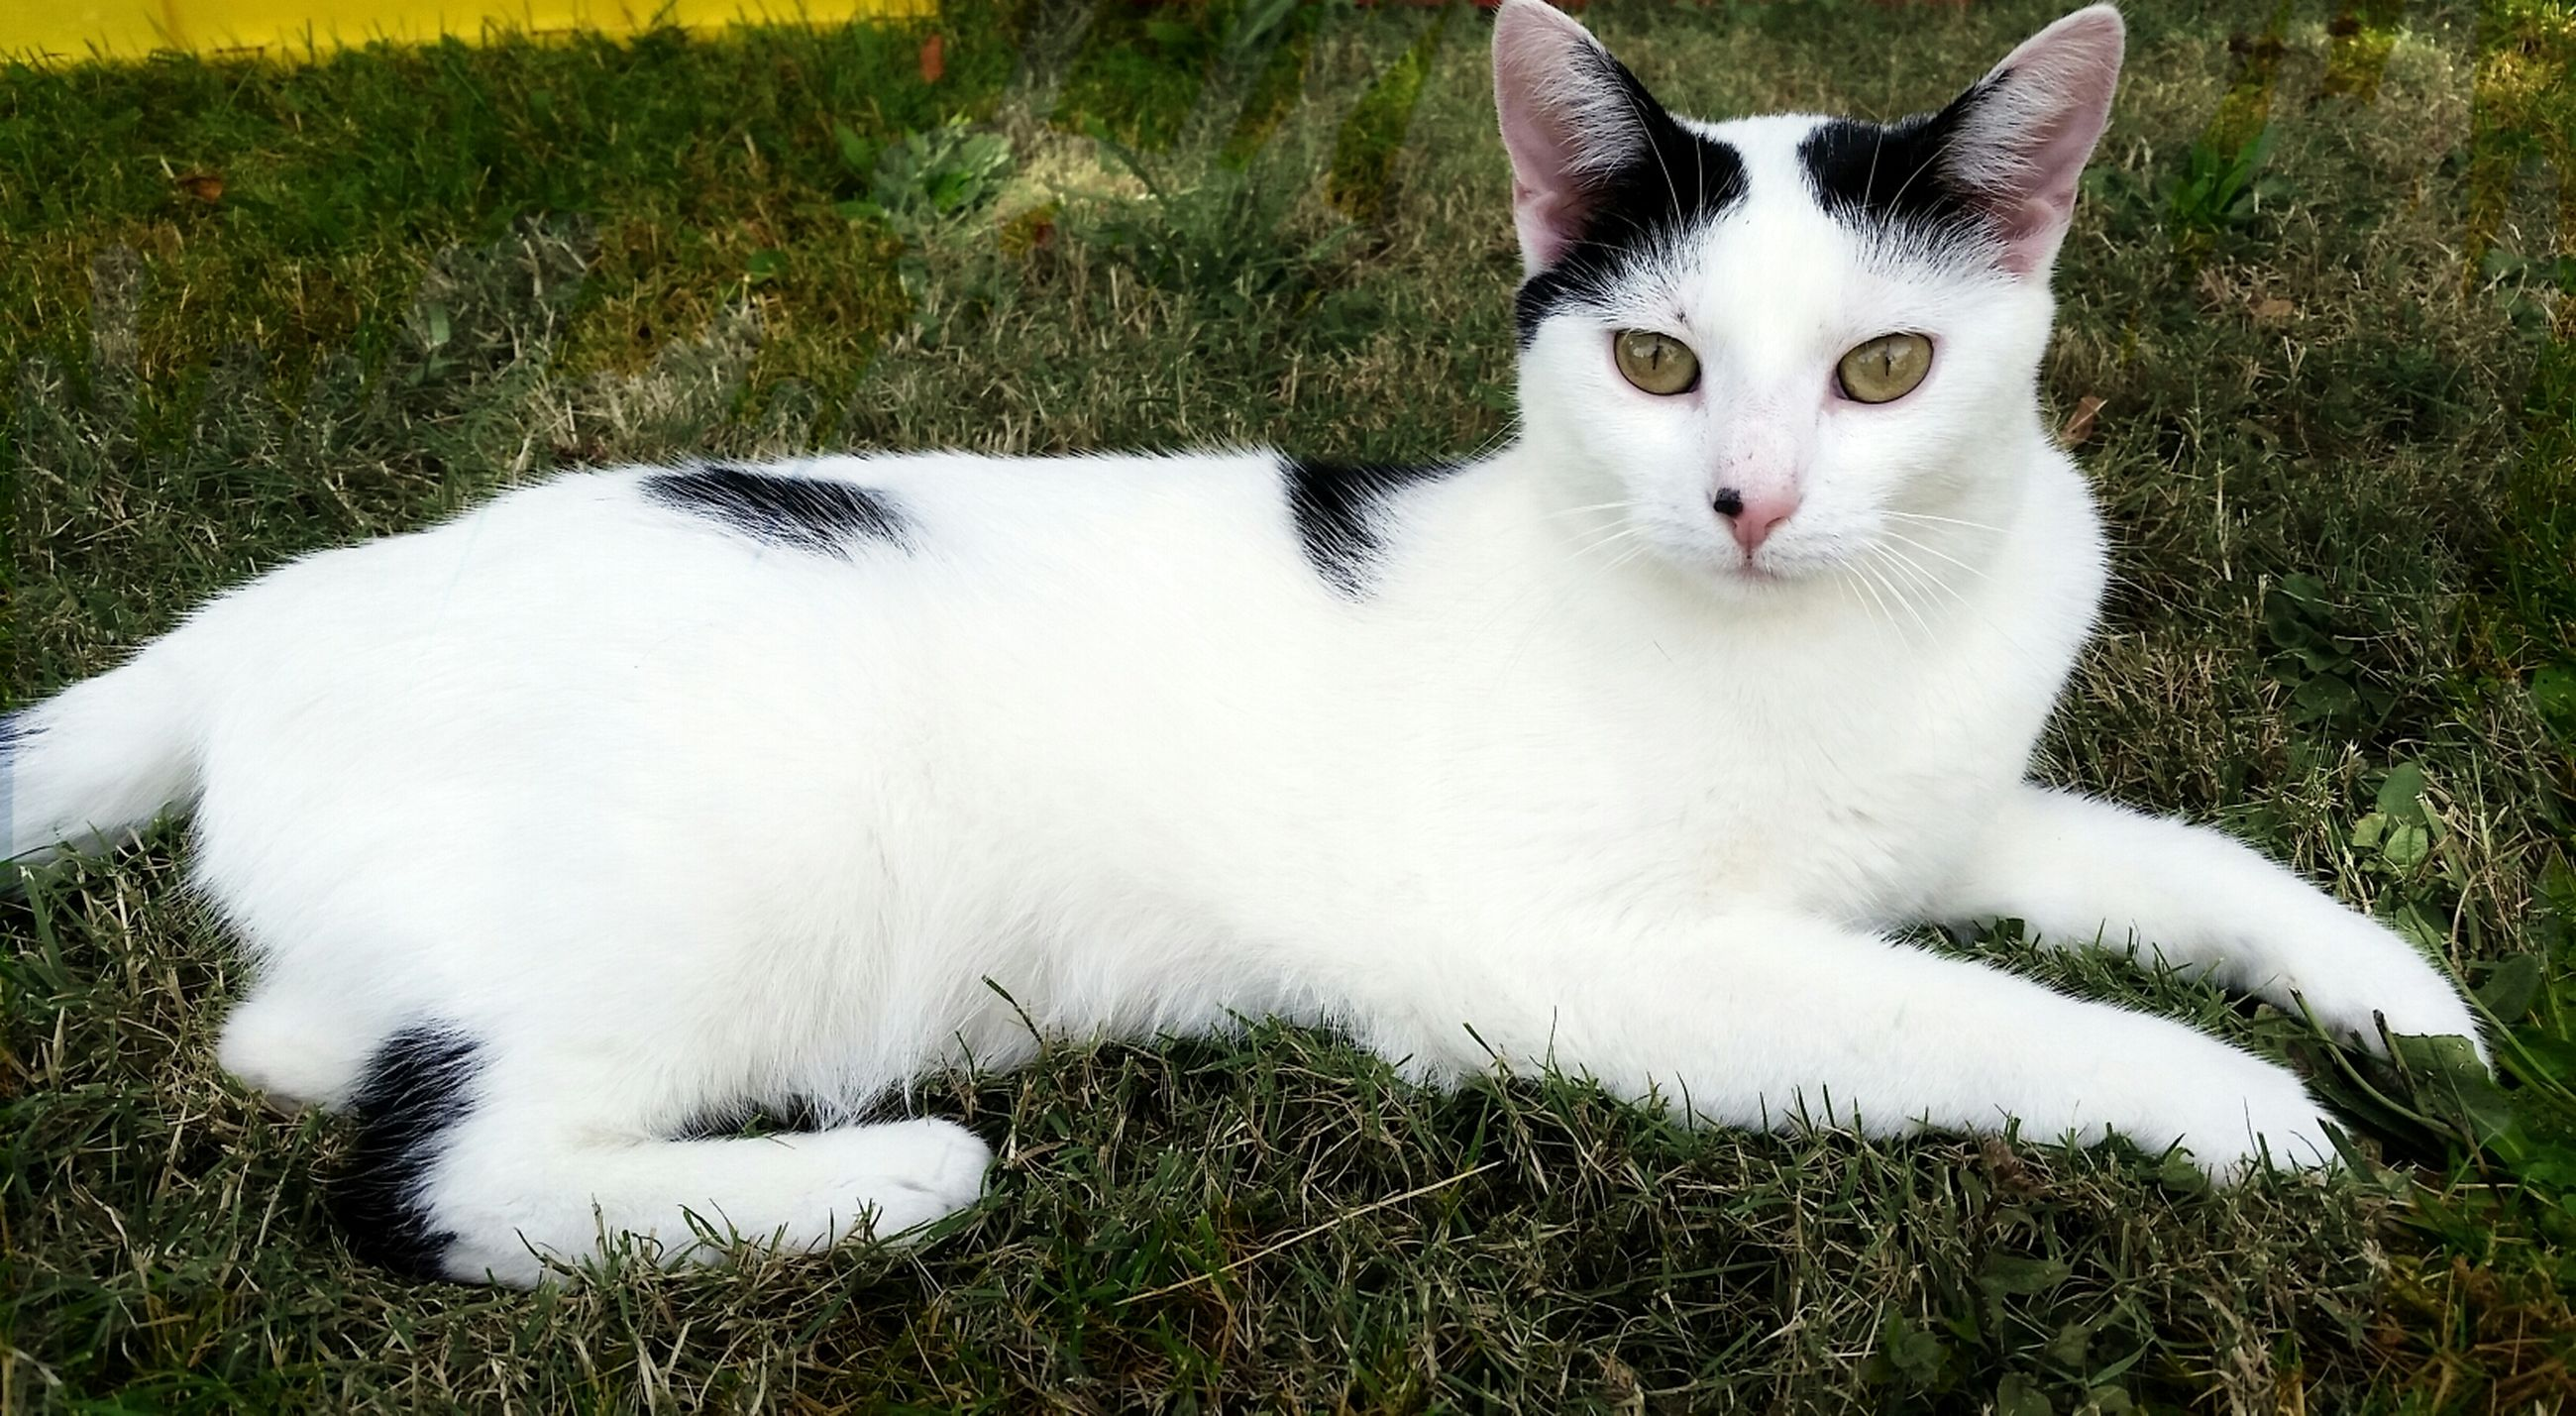 pets, domestic animals, domestic cat, cat, one animal, animal themes, grass, mammal, feline, looking at camera, portrait, white color, field, grassy, whisker, close-up, alertness, relaxation, sitting, high angle view